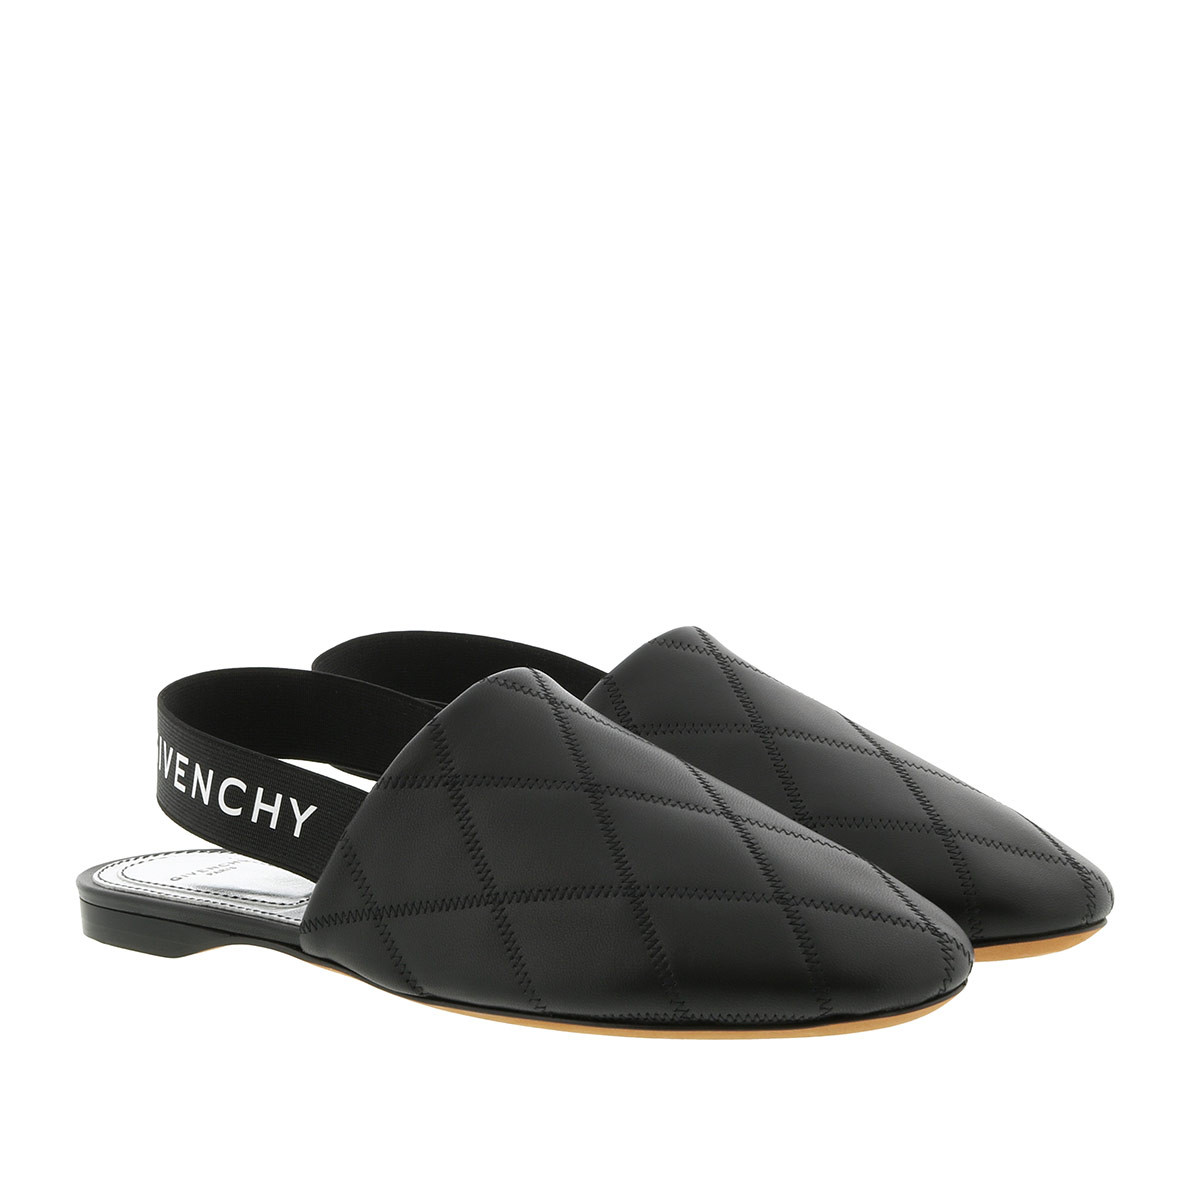 Givenchy Schuhe - Sling Back Flat Mules Quilted Leather Black - in schwarz - für Damen